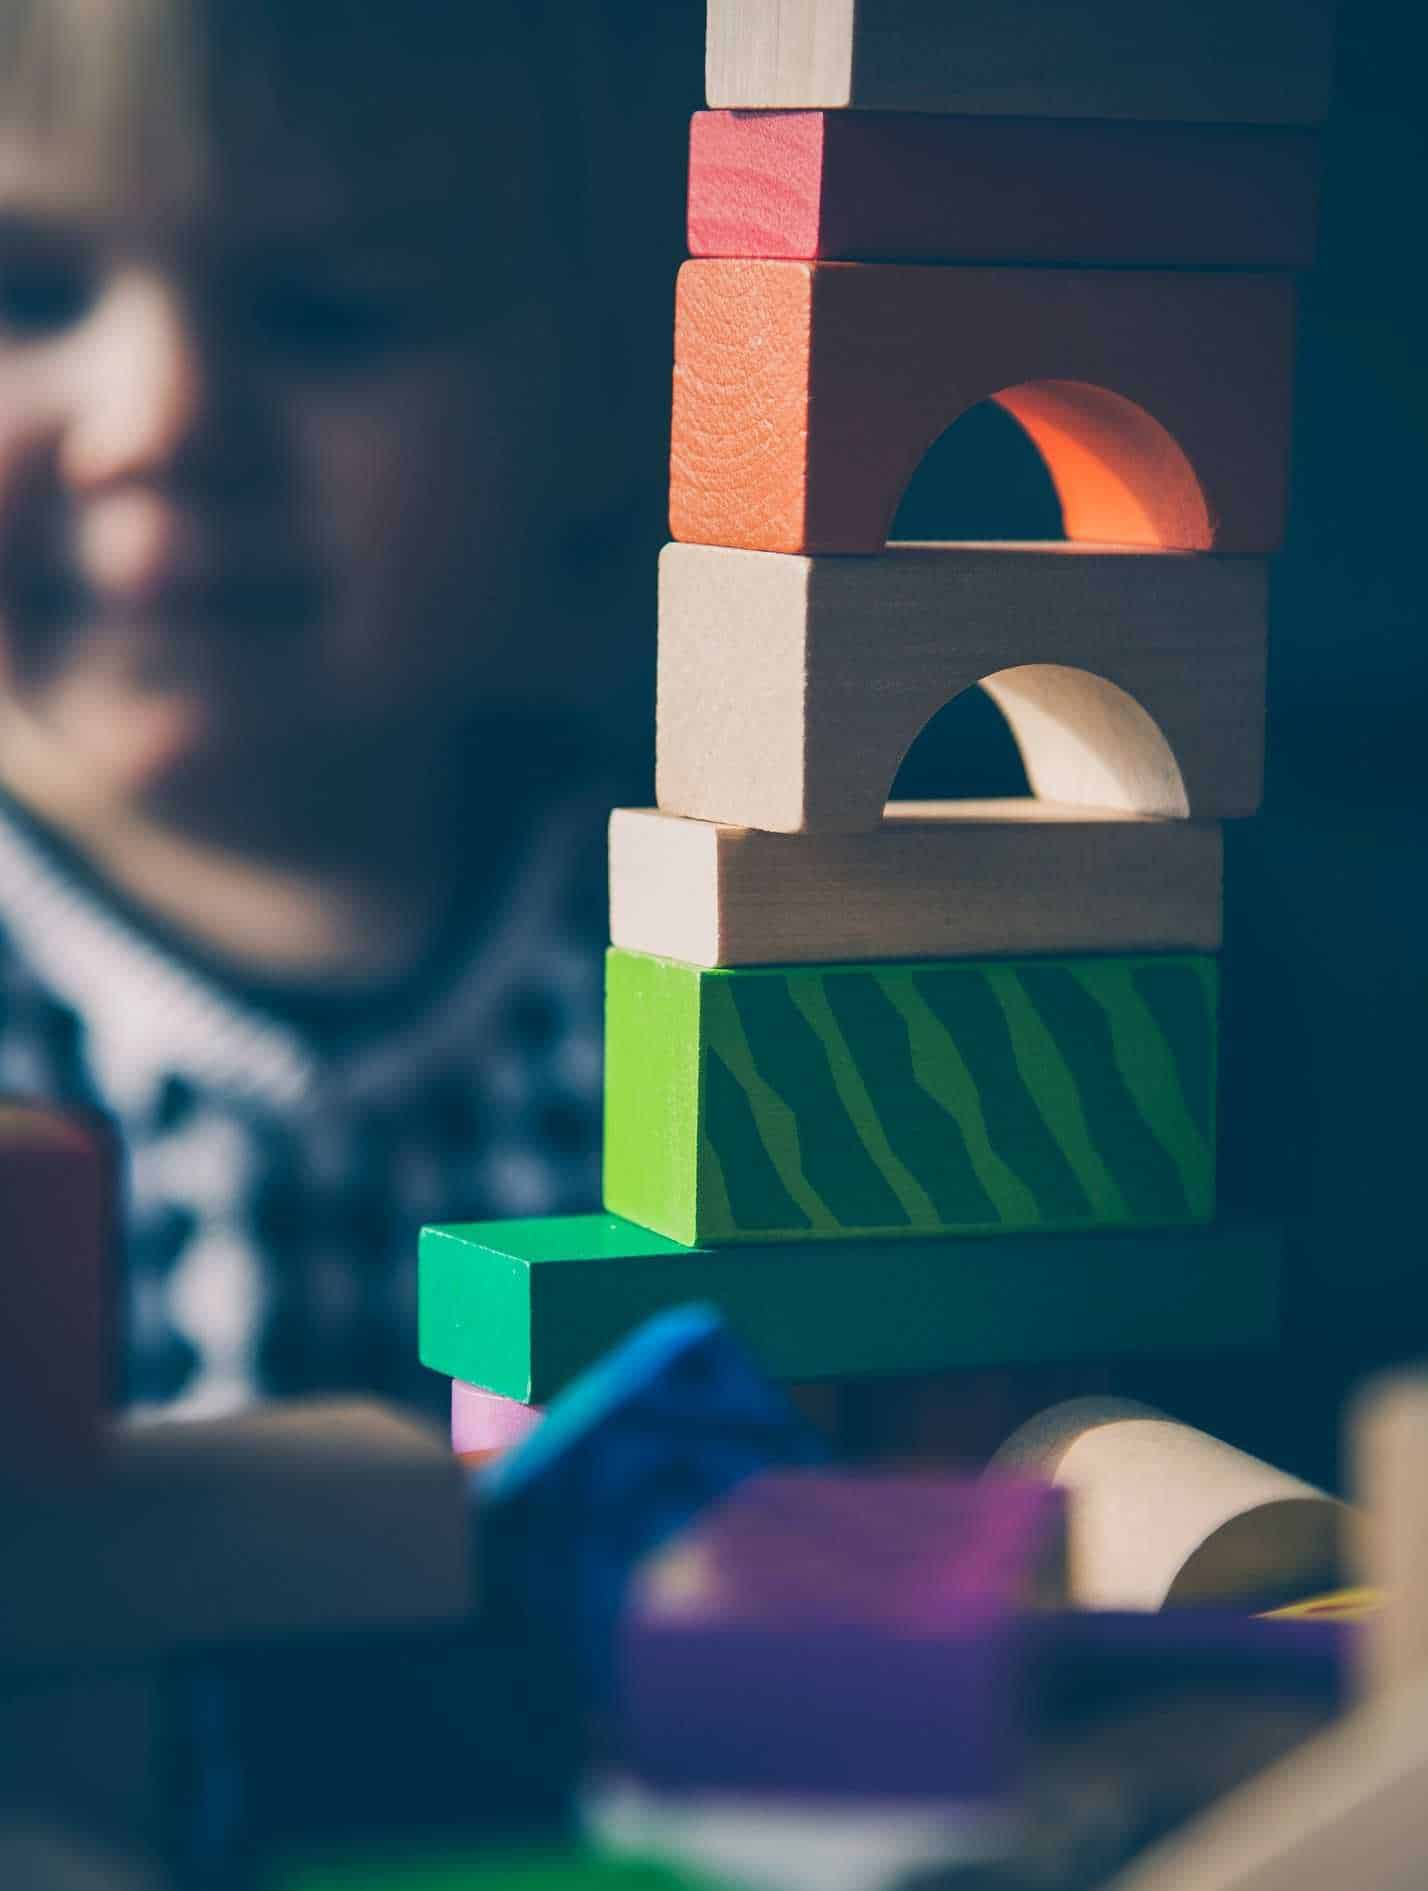 Dependencies: tower of wooden blocks